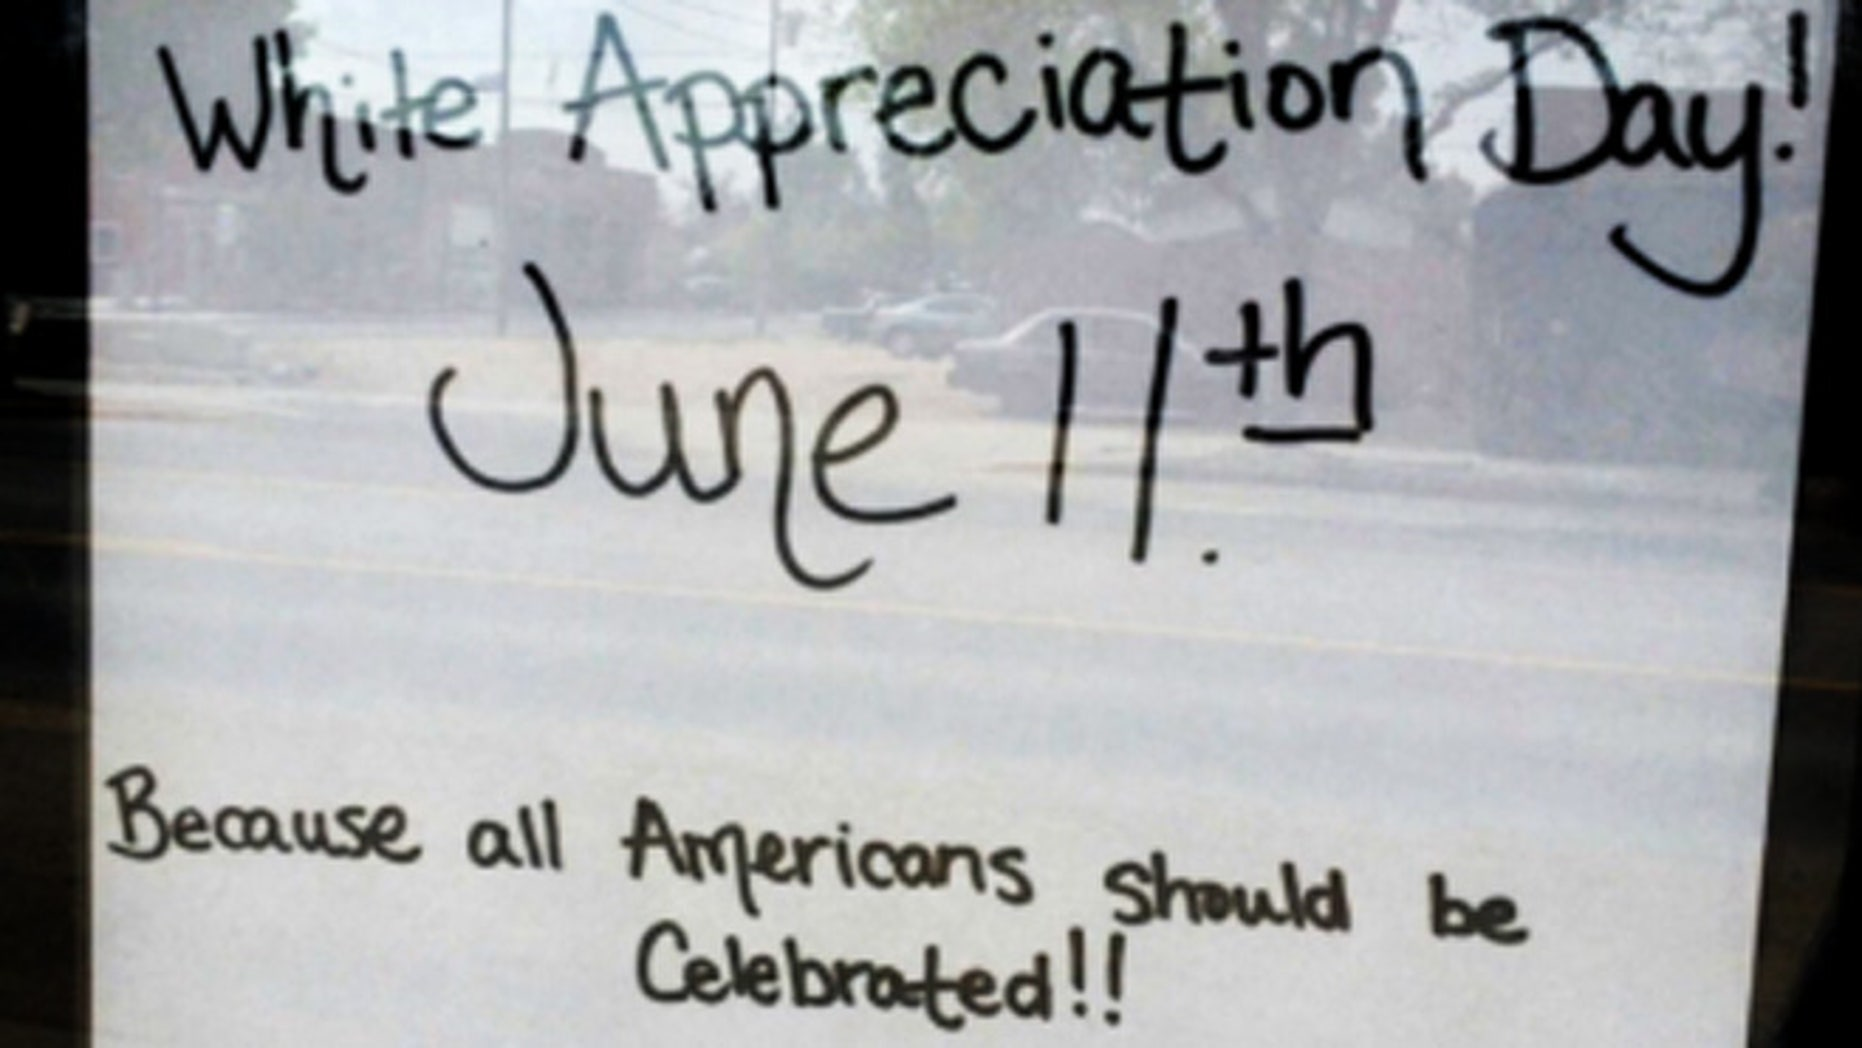 """The restaurant owner who plans to hold """"White Appreciation Day"""" now says a 10 percent discount will extend to all customers regardless of race if they ask for the discount."""